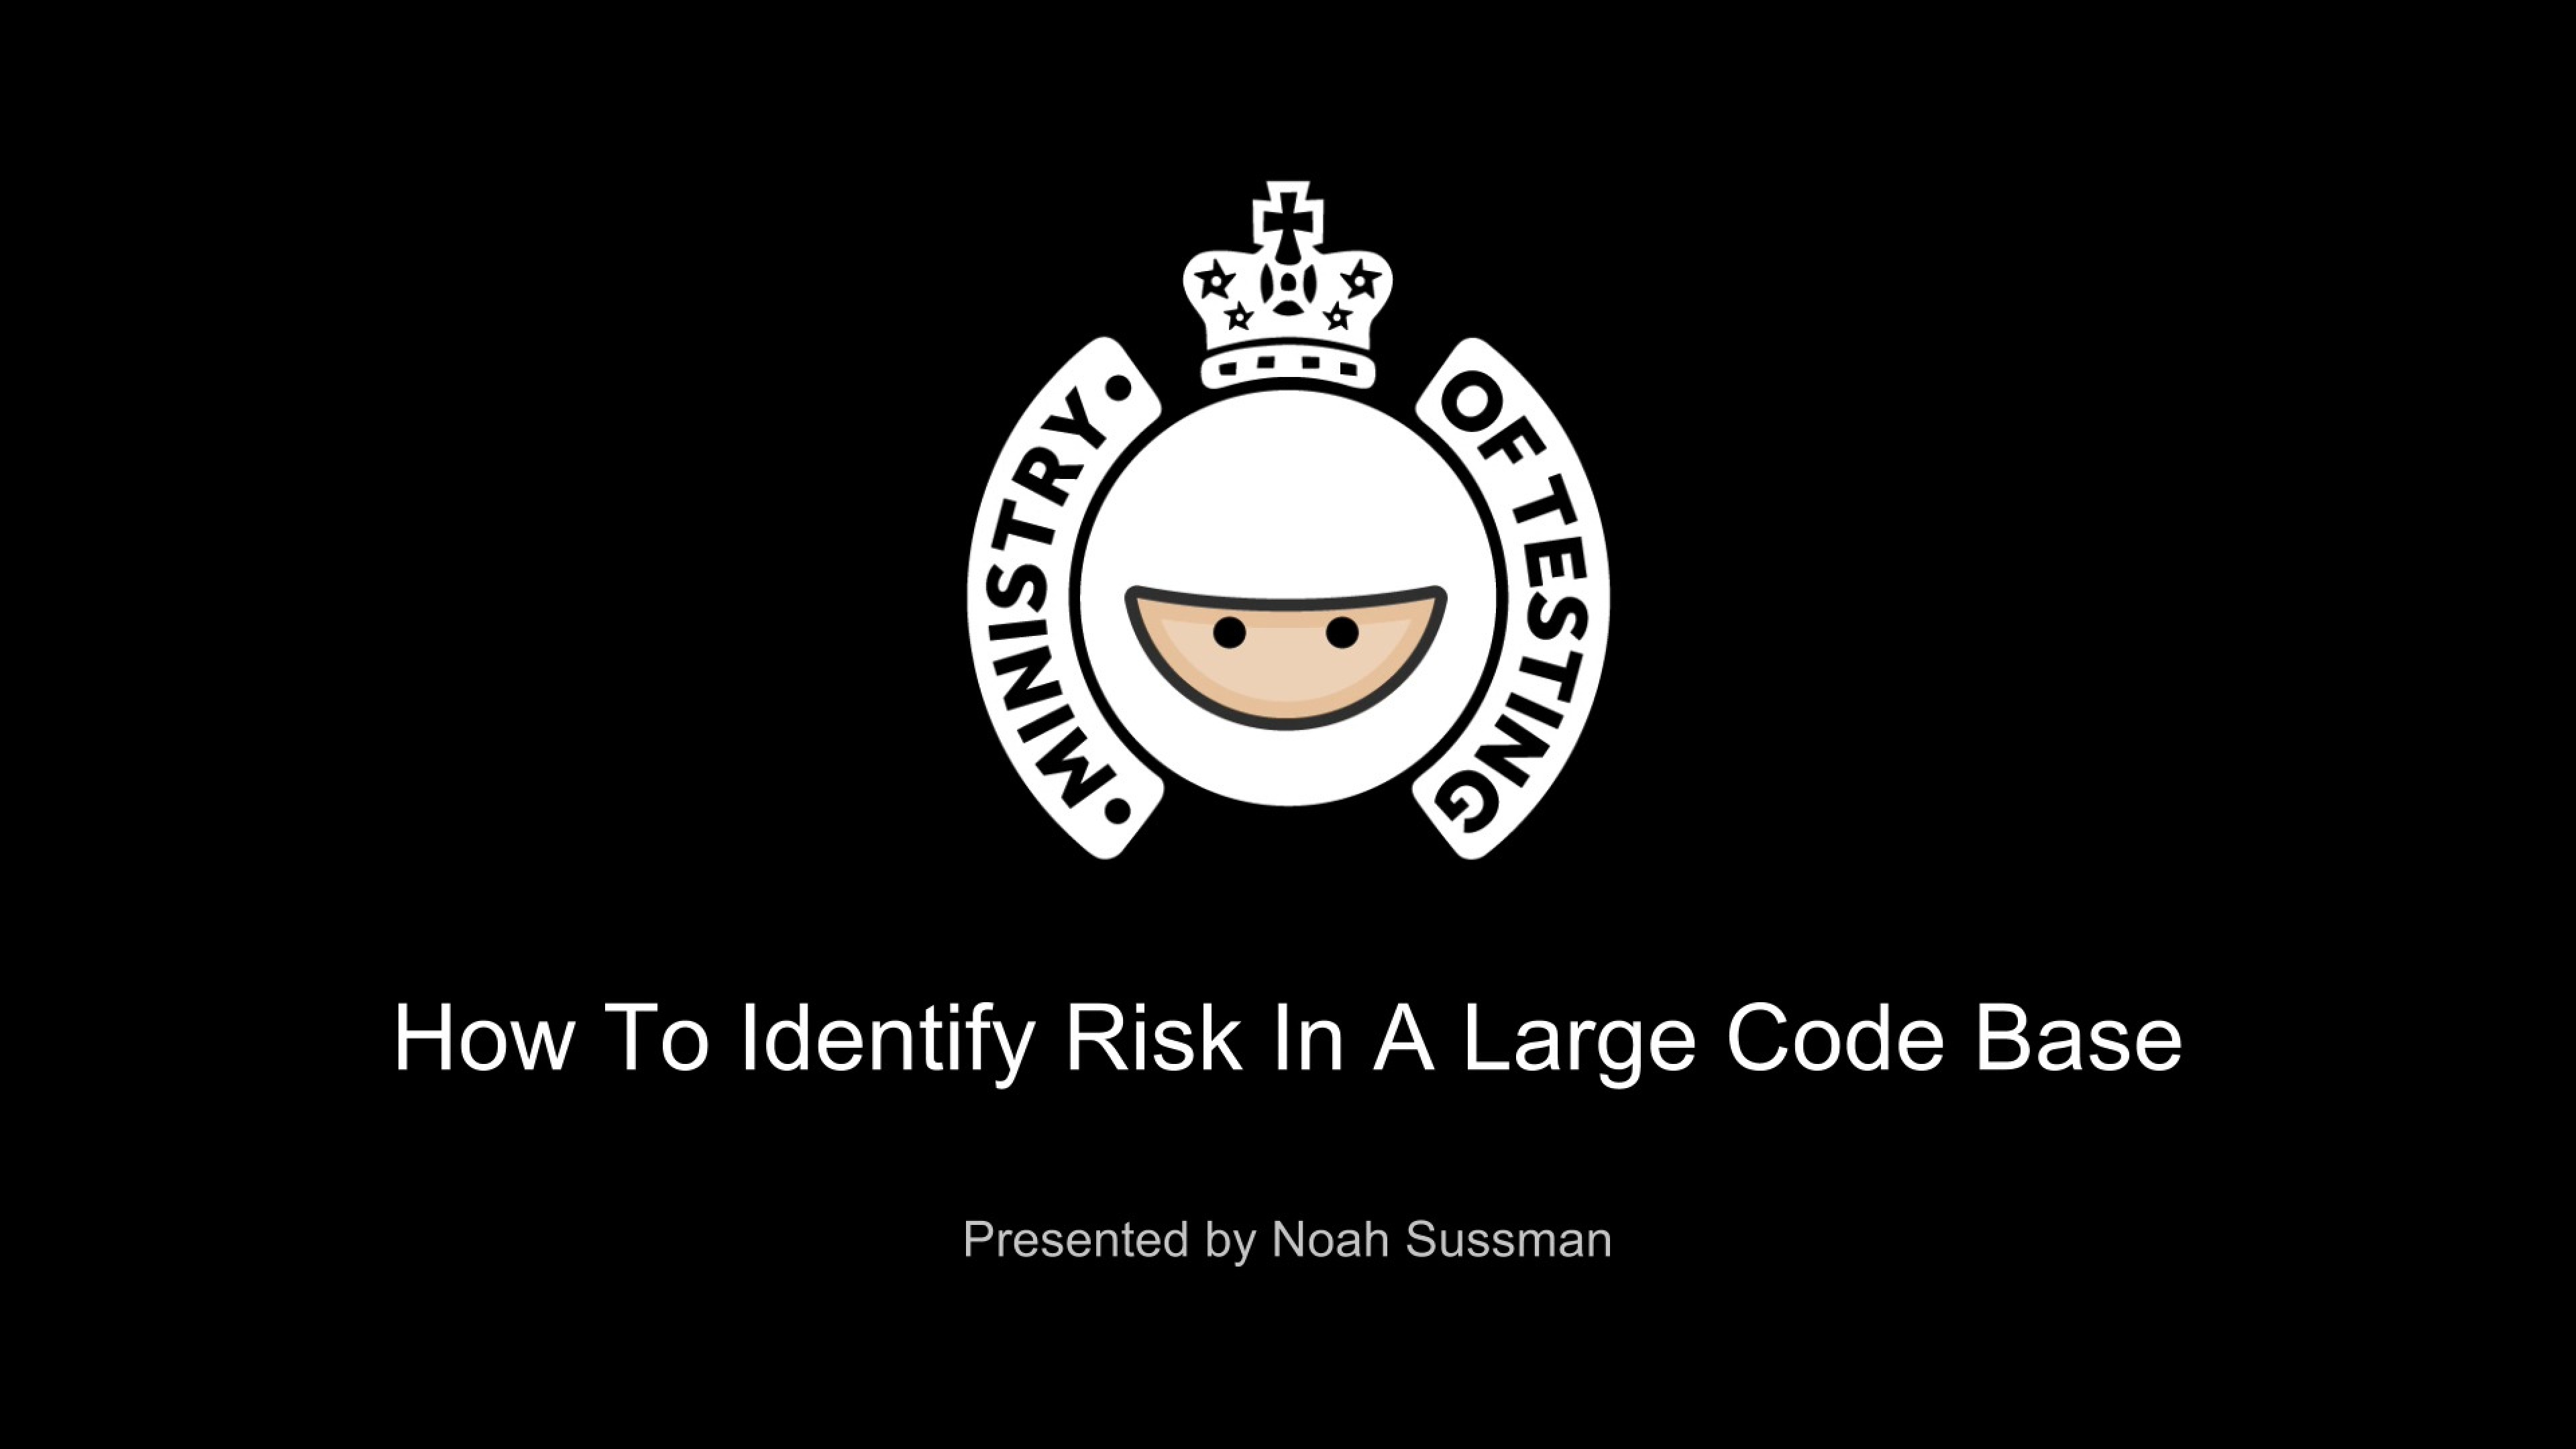 How to Identify Risk in a Large Code Base with Noah Sussman